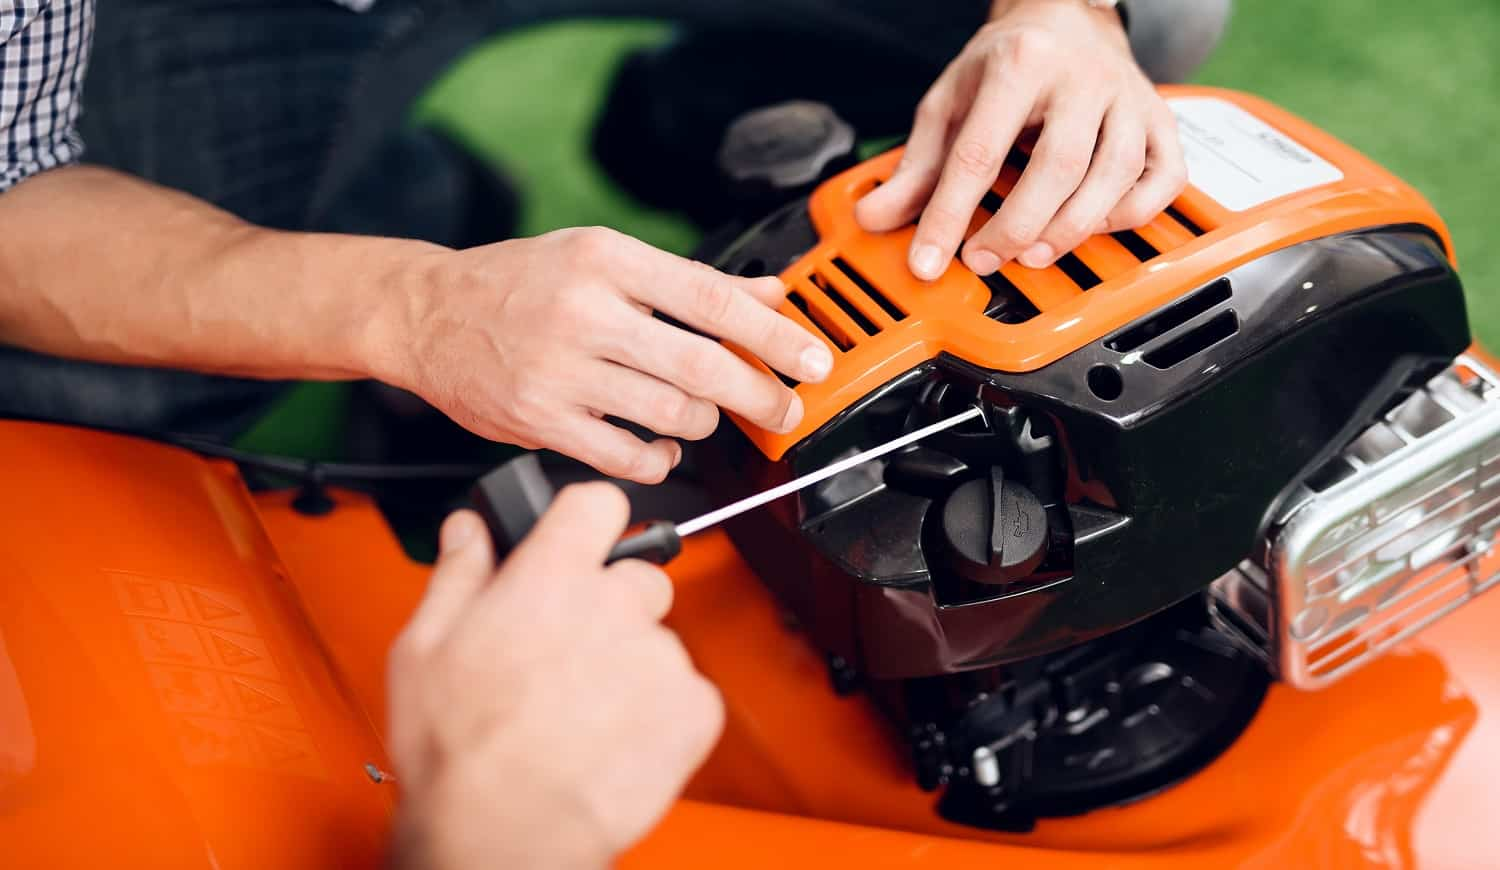 A man starts a lawnmower motor in the store.